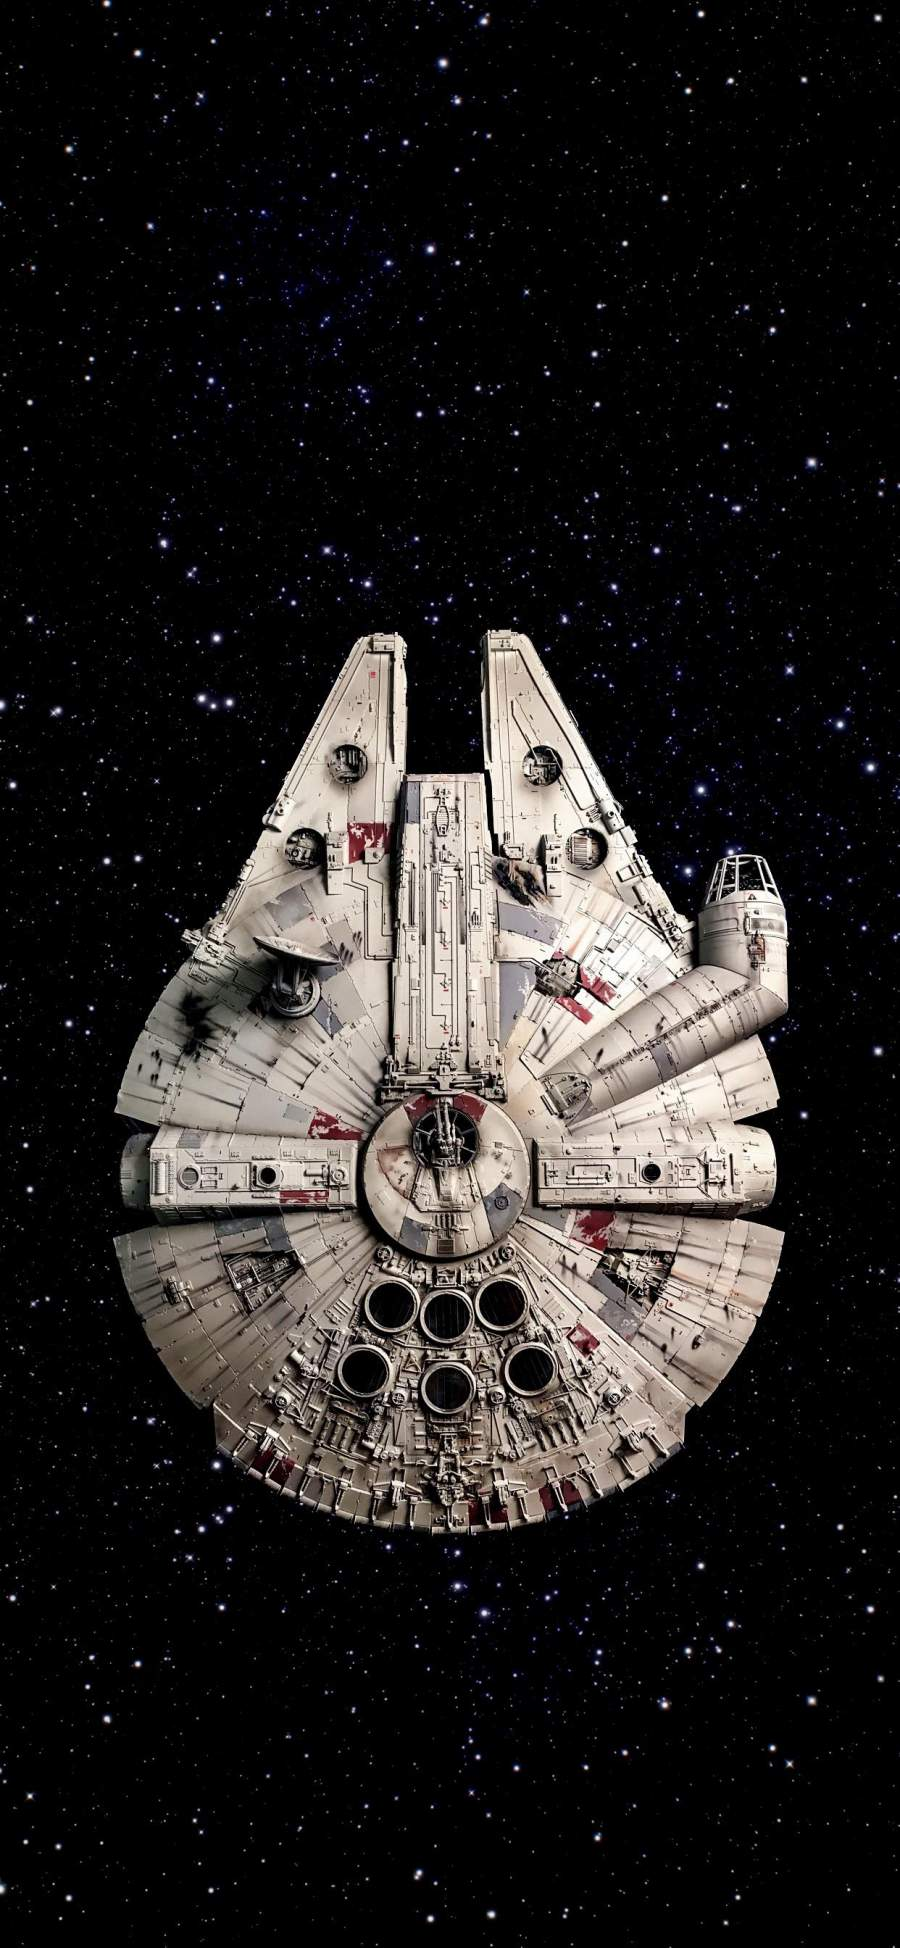 Star Wars Millennium Falcon Ship iPhone Wallpaper